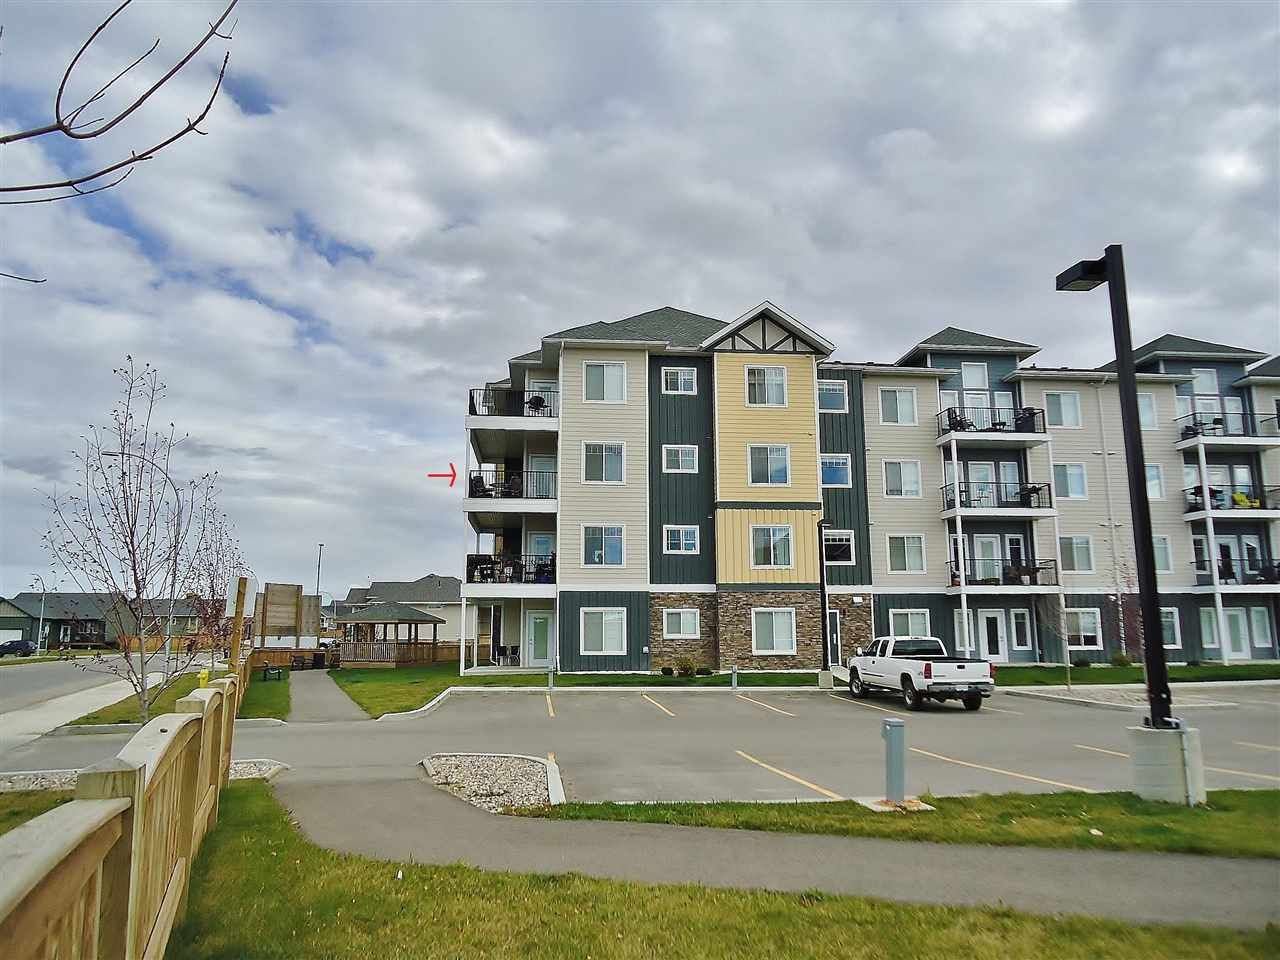 Main Photo: 303 11203 105 AVENUE in : Fort St. John - City NW Condo for sale : MLS®# R2152198